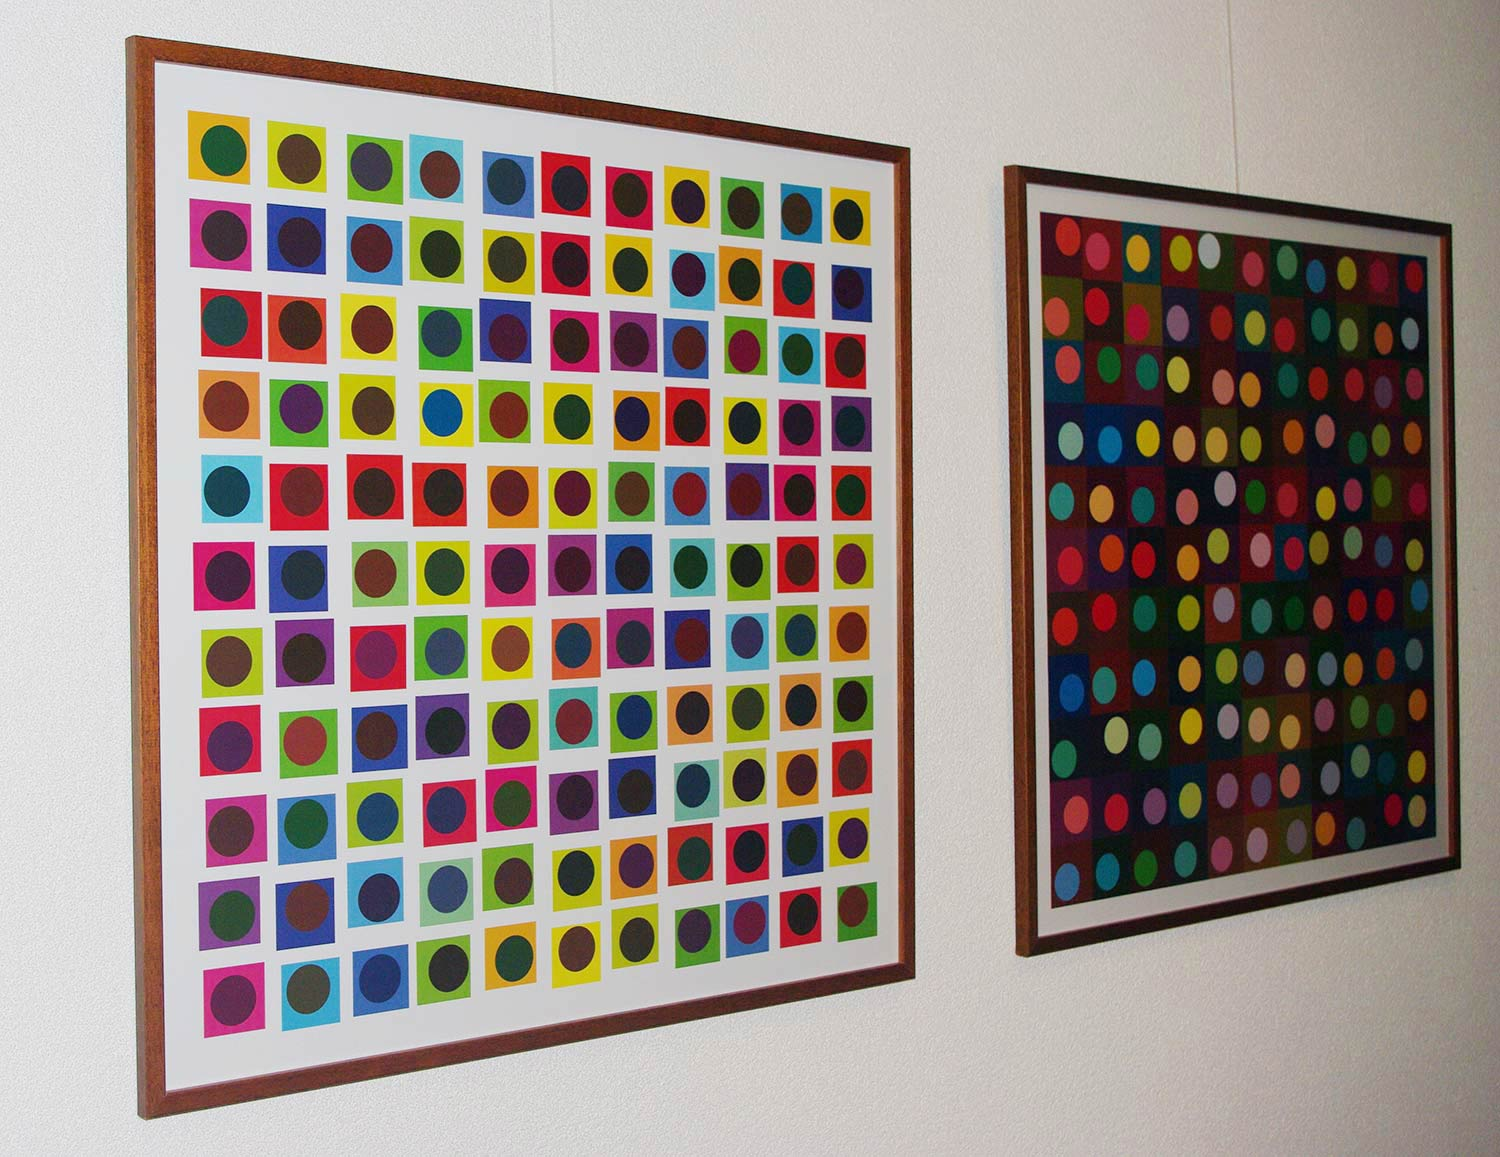 squares-dots-2-work